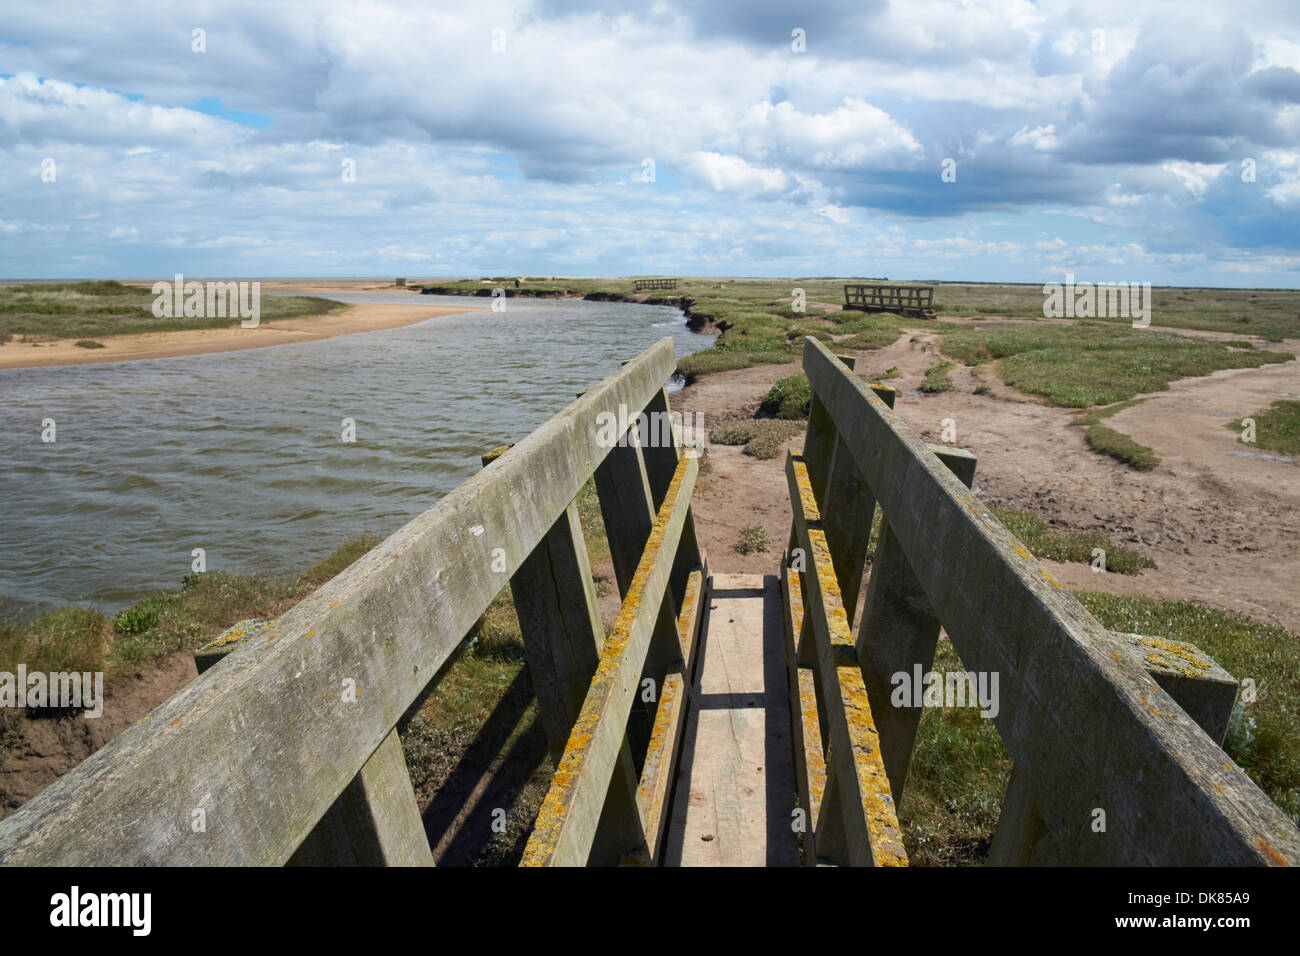 Footbridge, Stiffkey Saltmarshes, Norfolk, England. Stock Photo